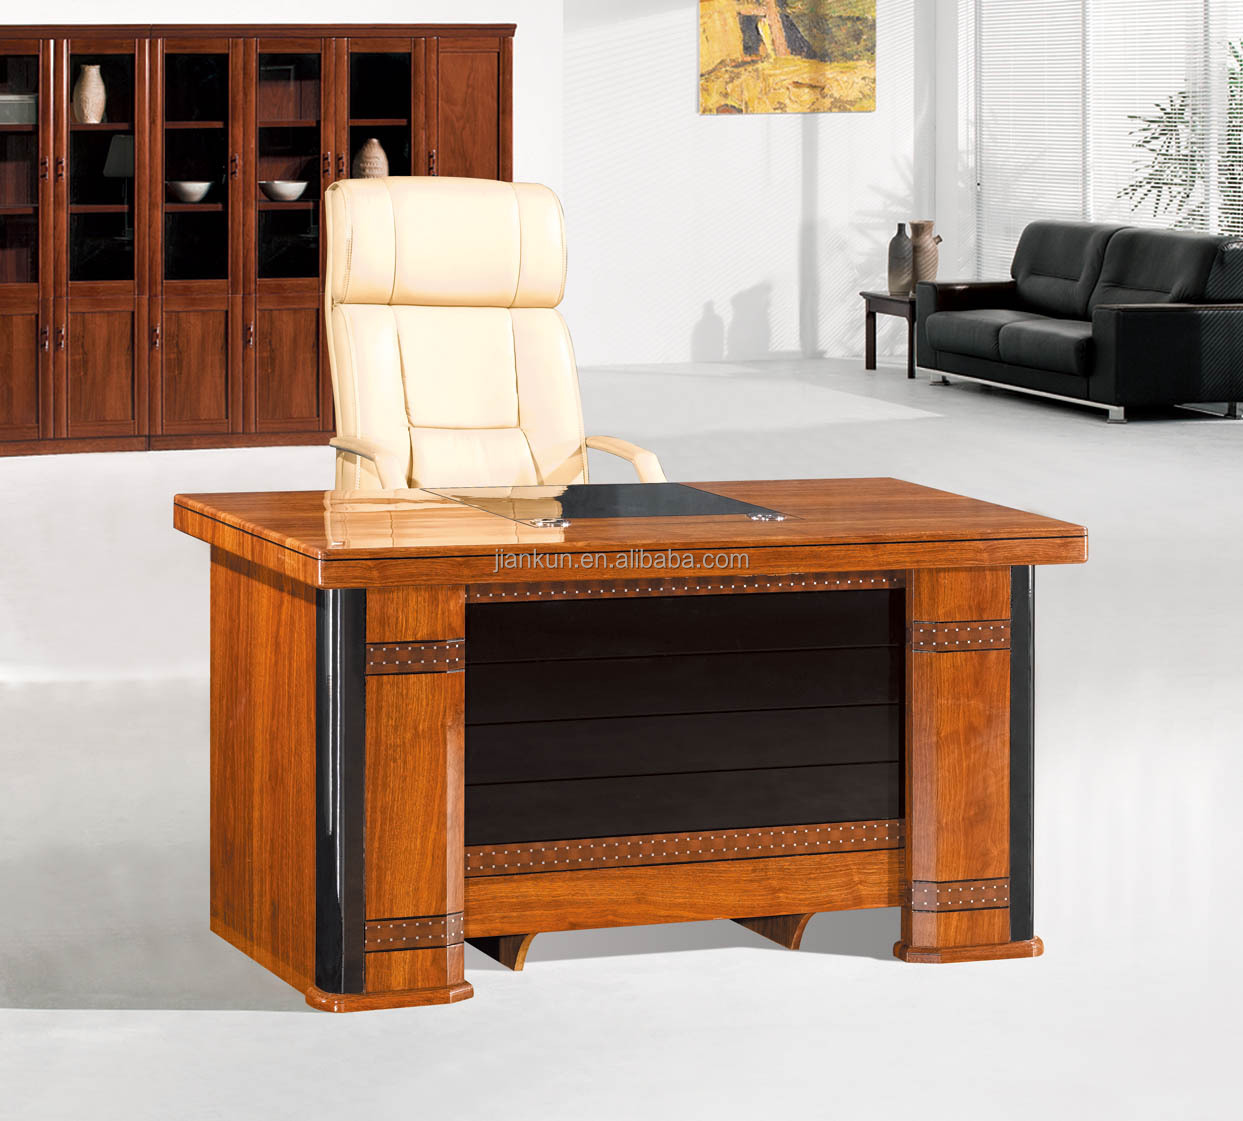 classic office furniture classic office furniture suppliers